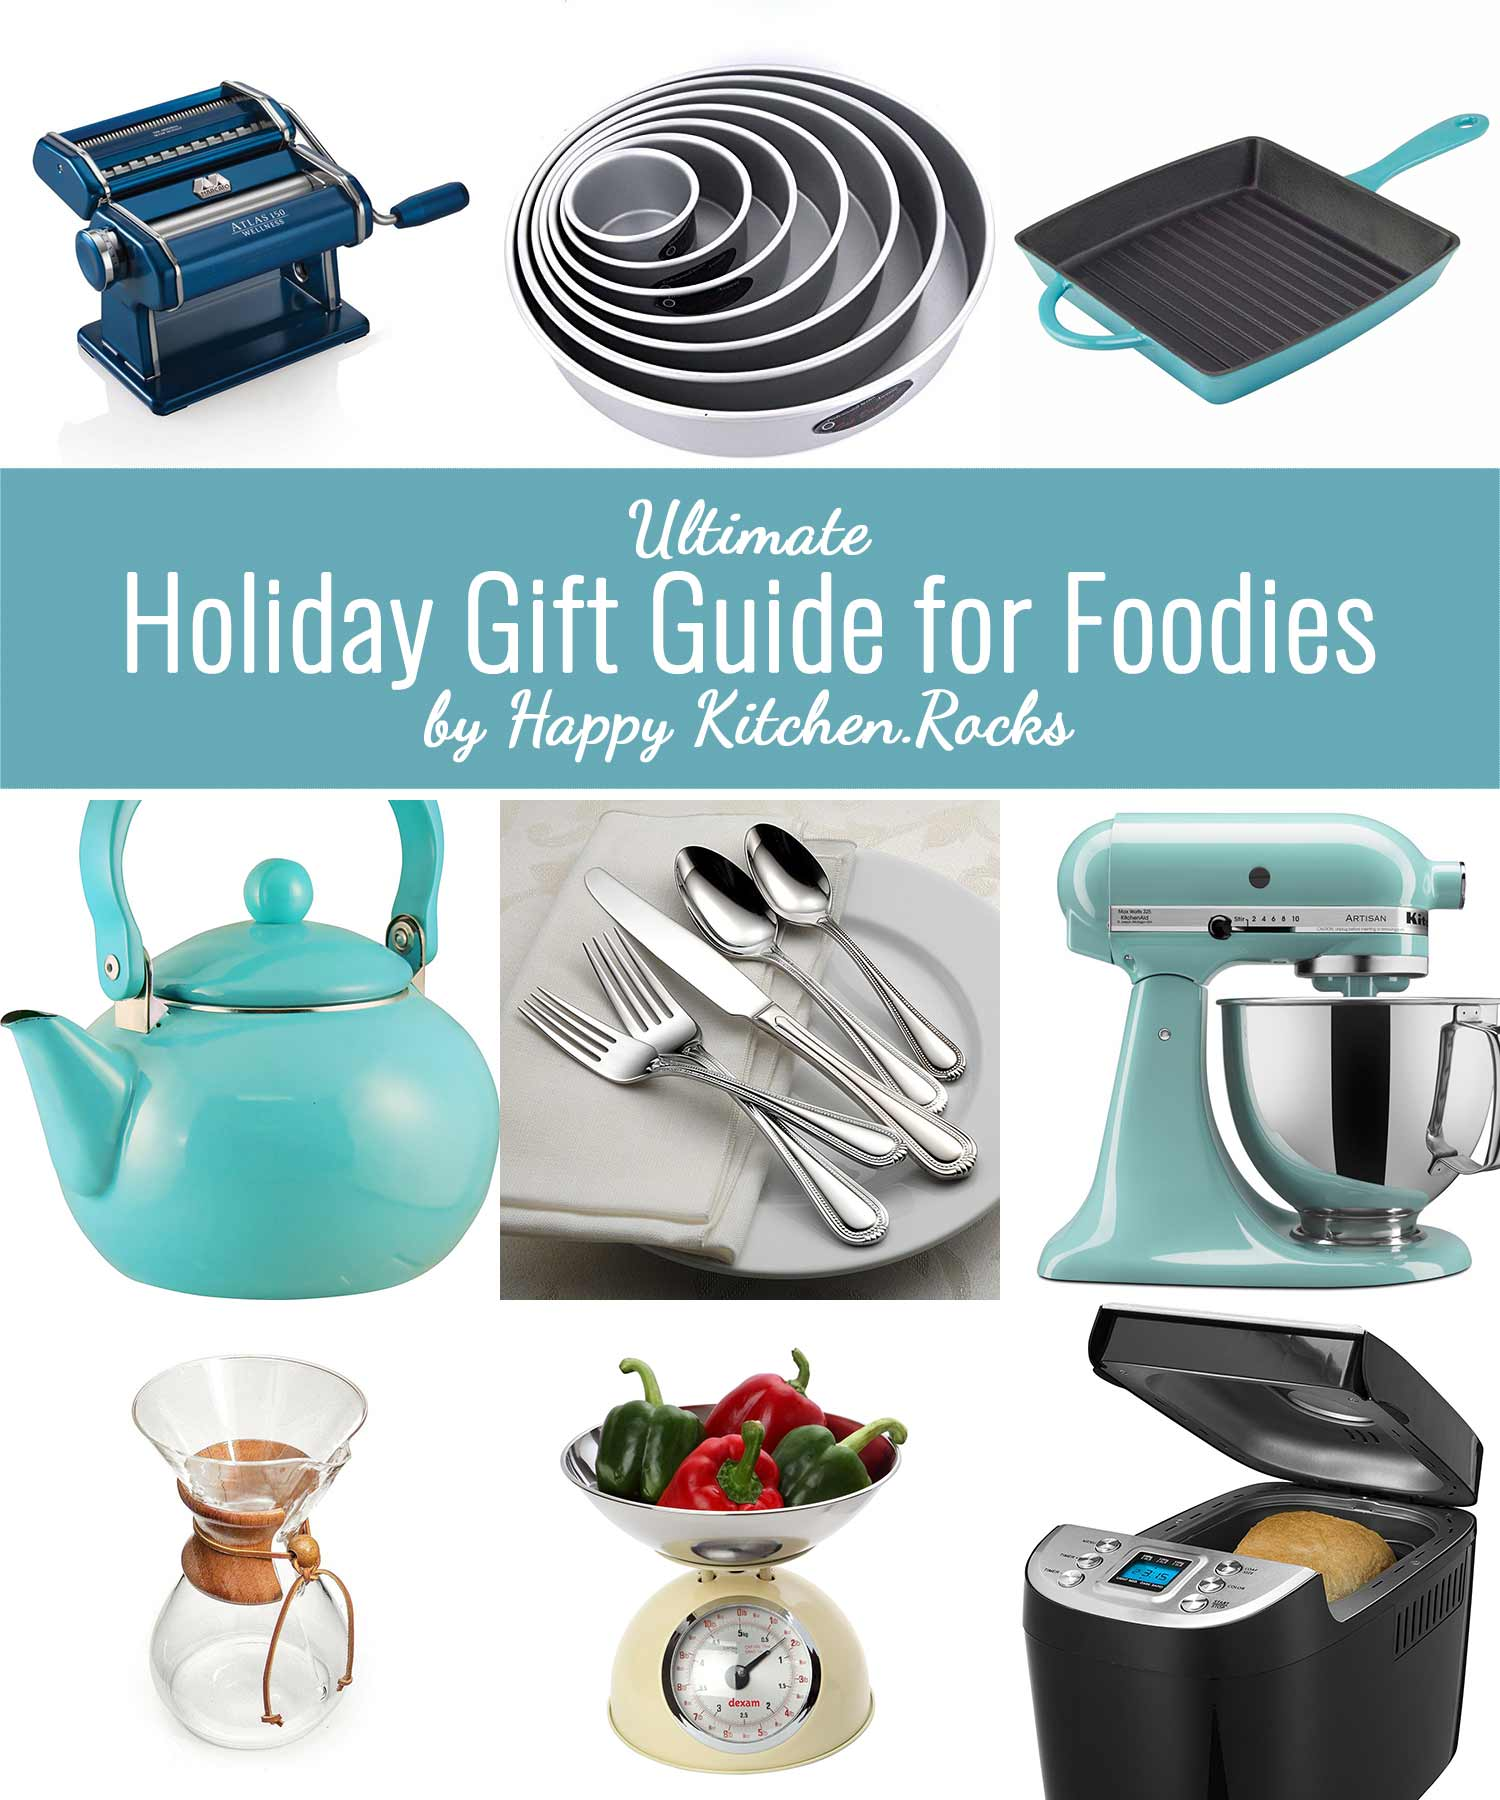 Ultimate Holiday Gift Guide for Foodies